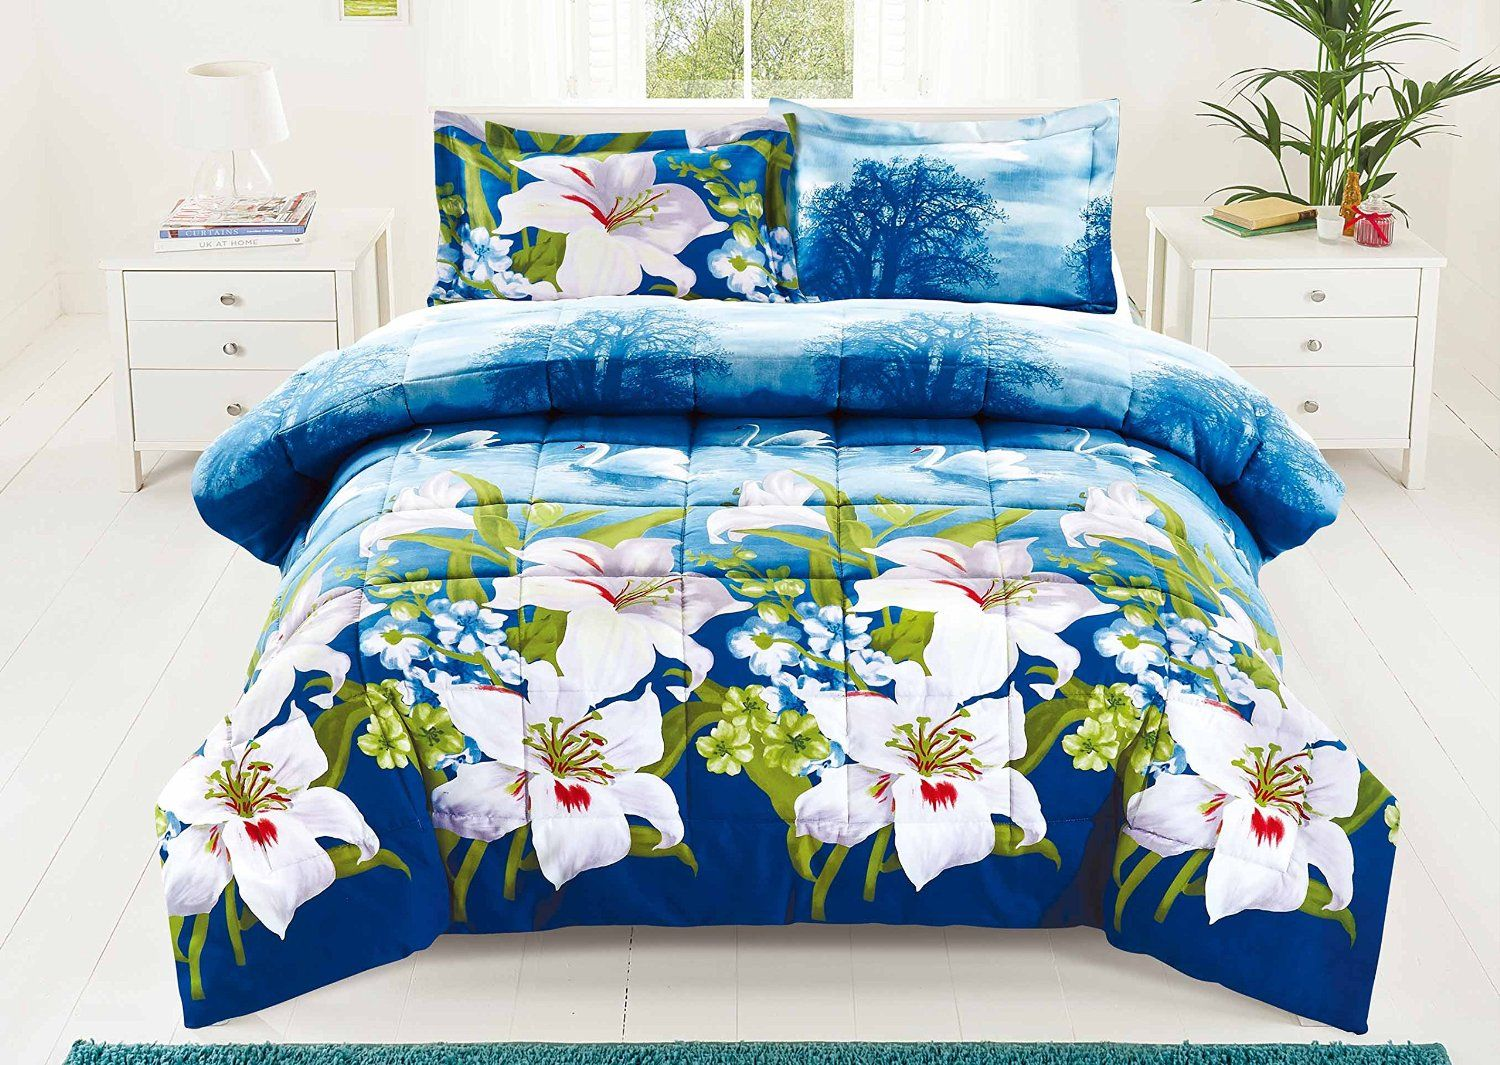 king fbba and lau maxx desi bed modern lauren tj wonderful ralph sale on bedding with comforters comforter bedroom mesmerizing sets gorgeous